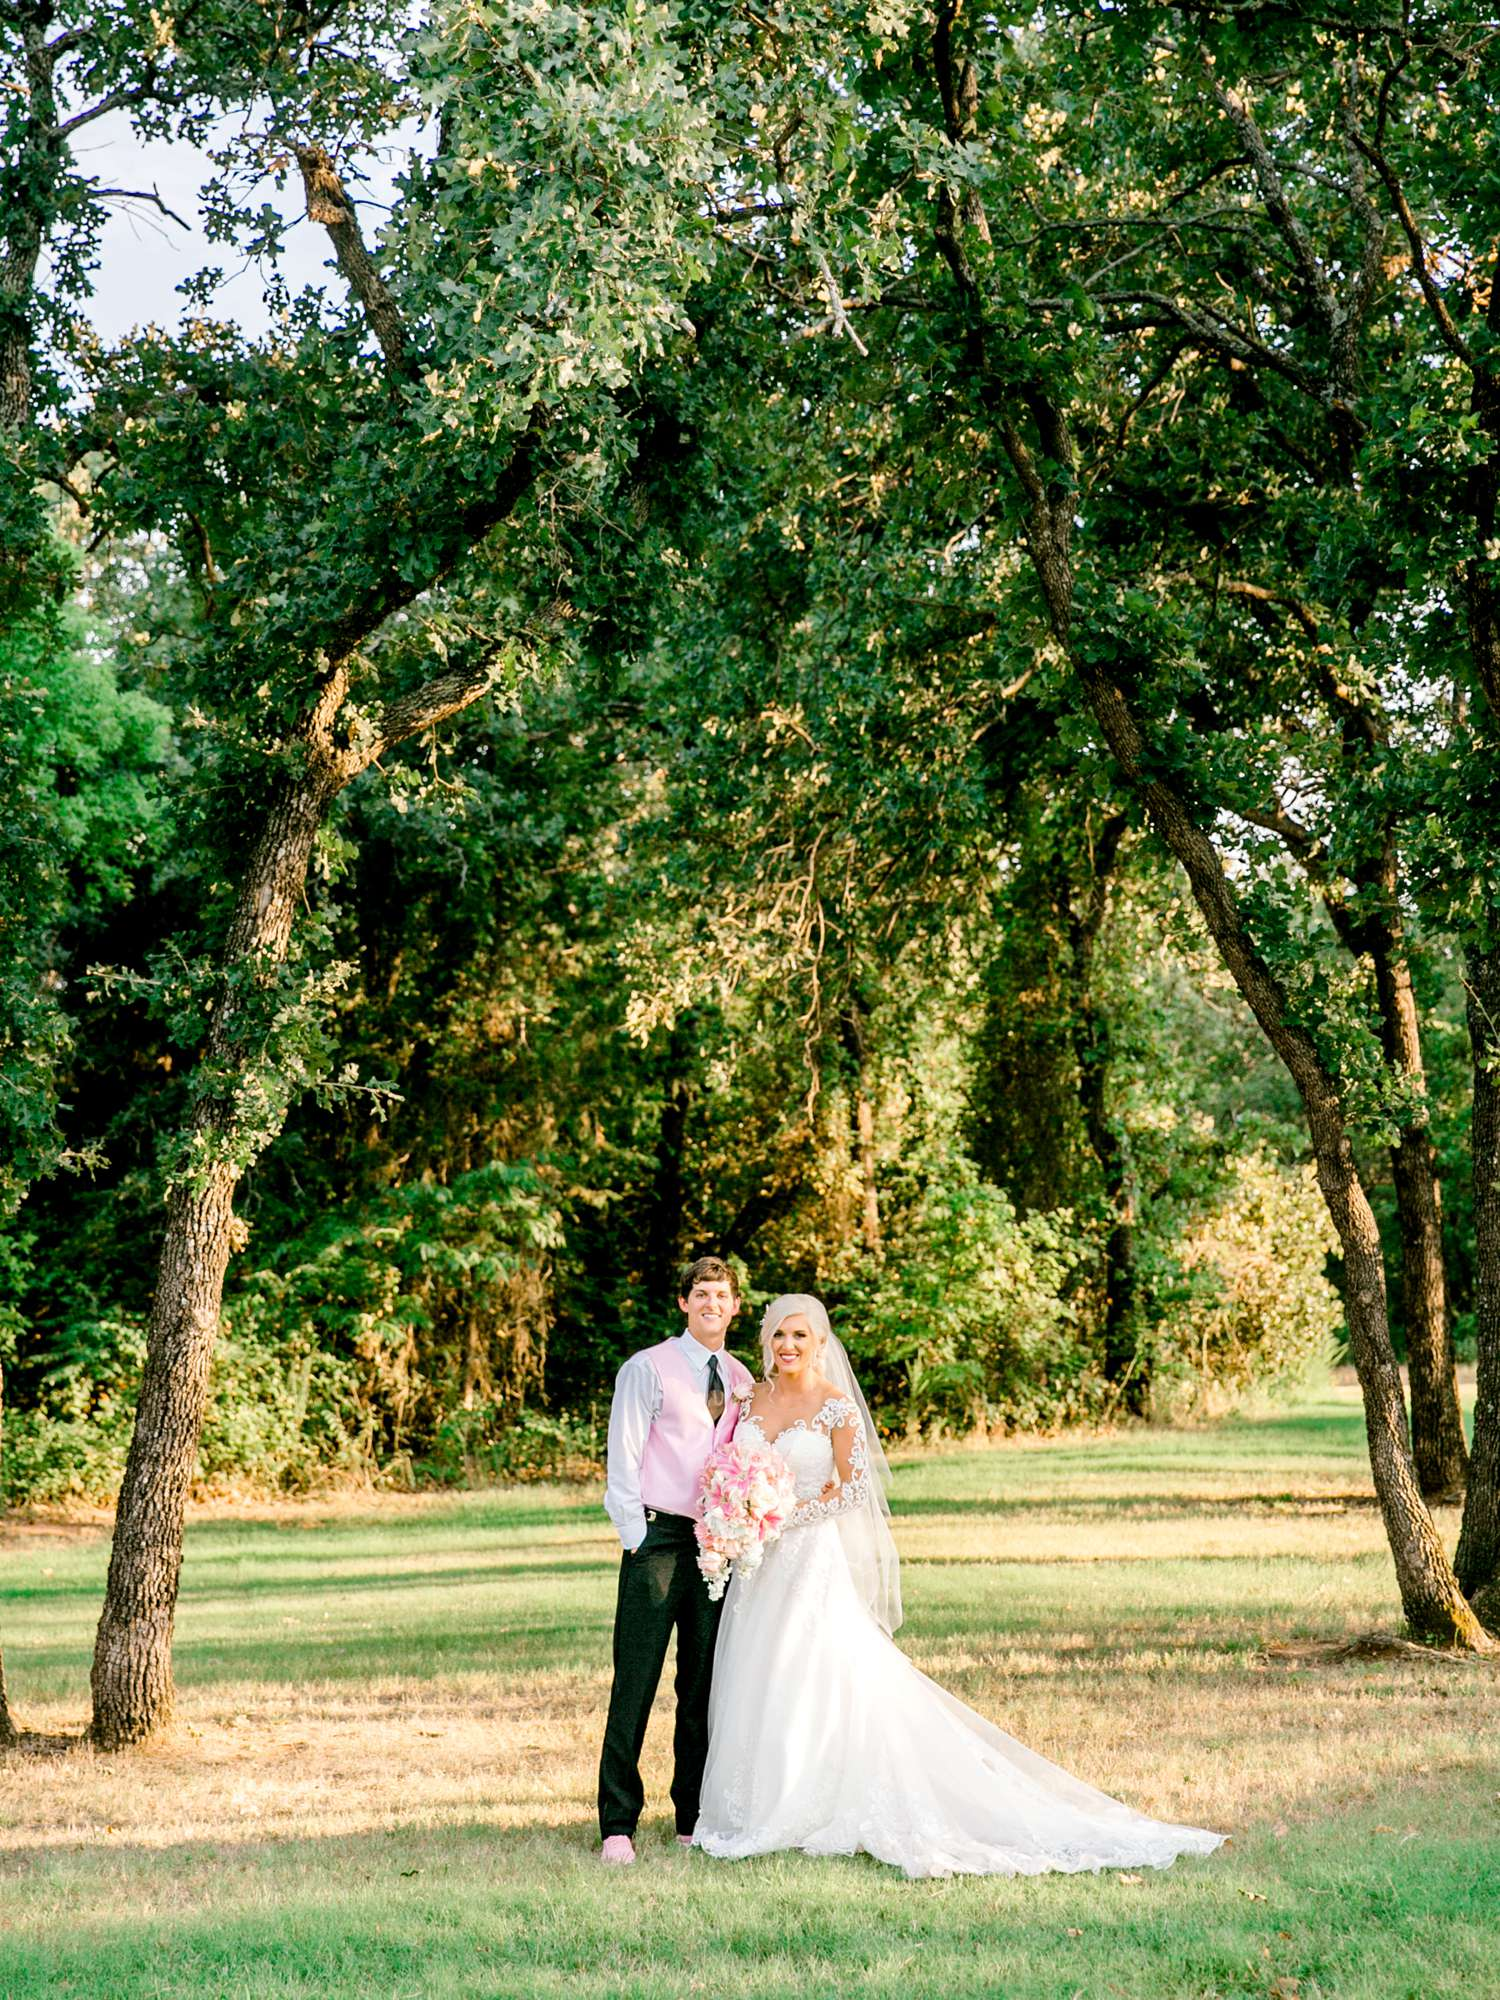 JESSICA+LYLE+NEEL+THE_SPRINGS_EVENTS_WEDDING_OKLAHOMA_ALLEEJ_PHOTOGRAPHER_0085.jpg